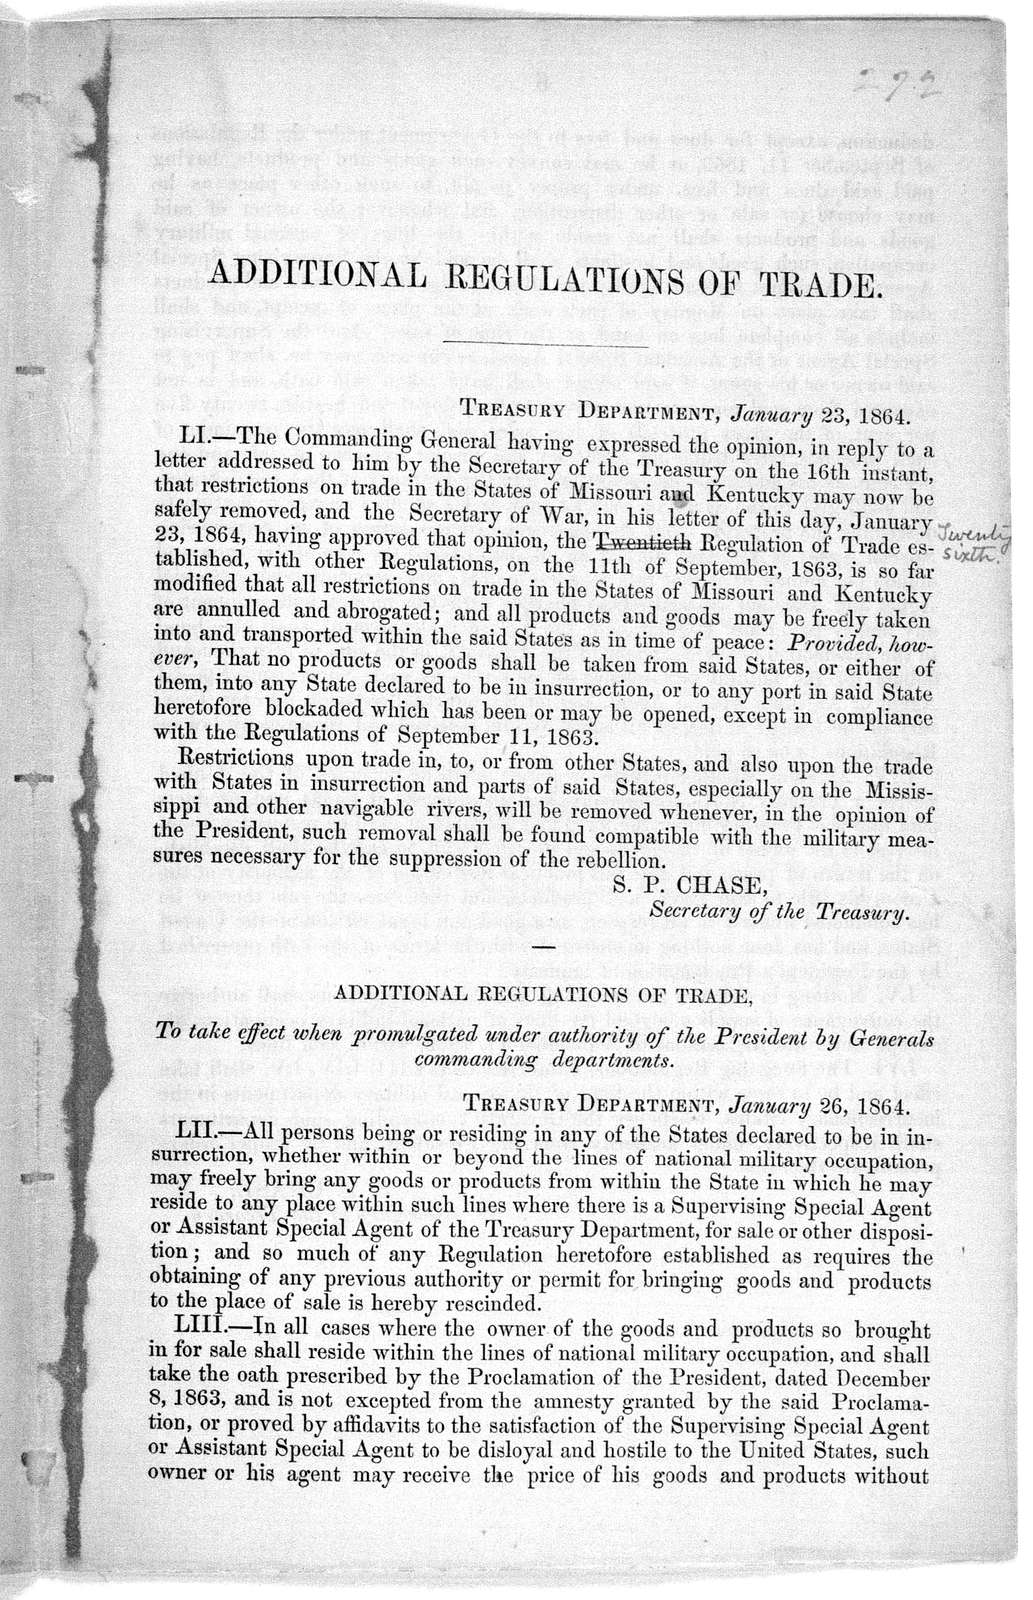 Additional regulations concerning commercial intercourse with and in states declared in insurrection. January 26, 1864. [Washington, D. C. 1854].